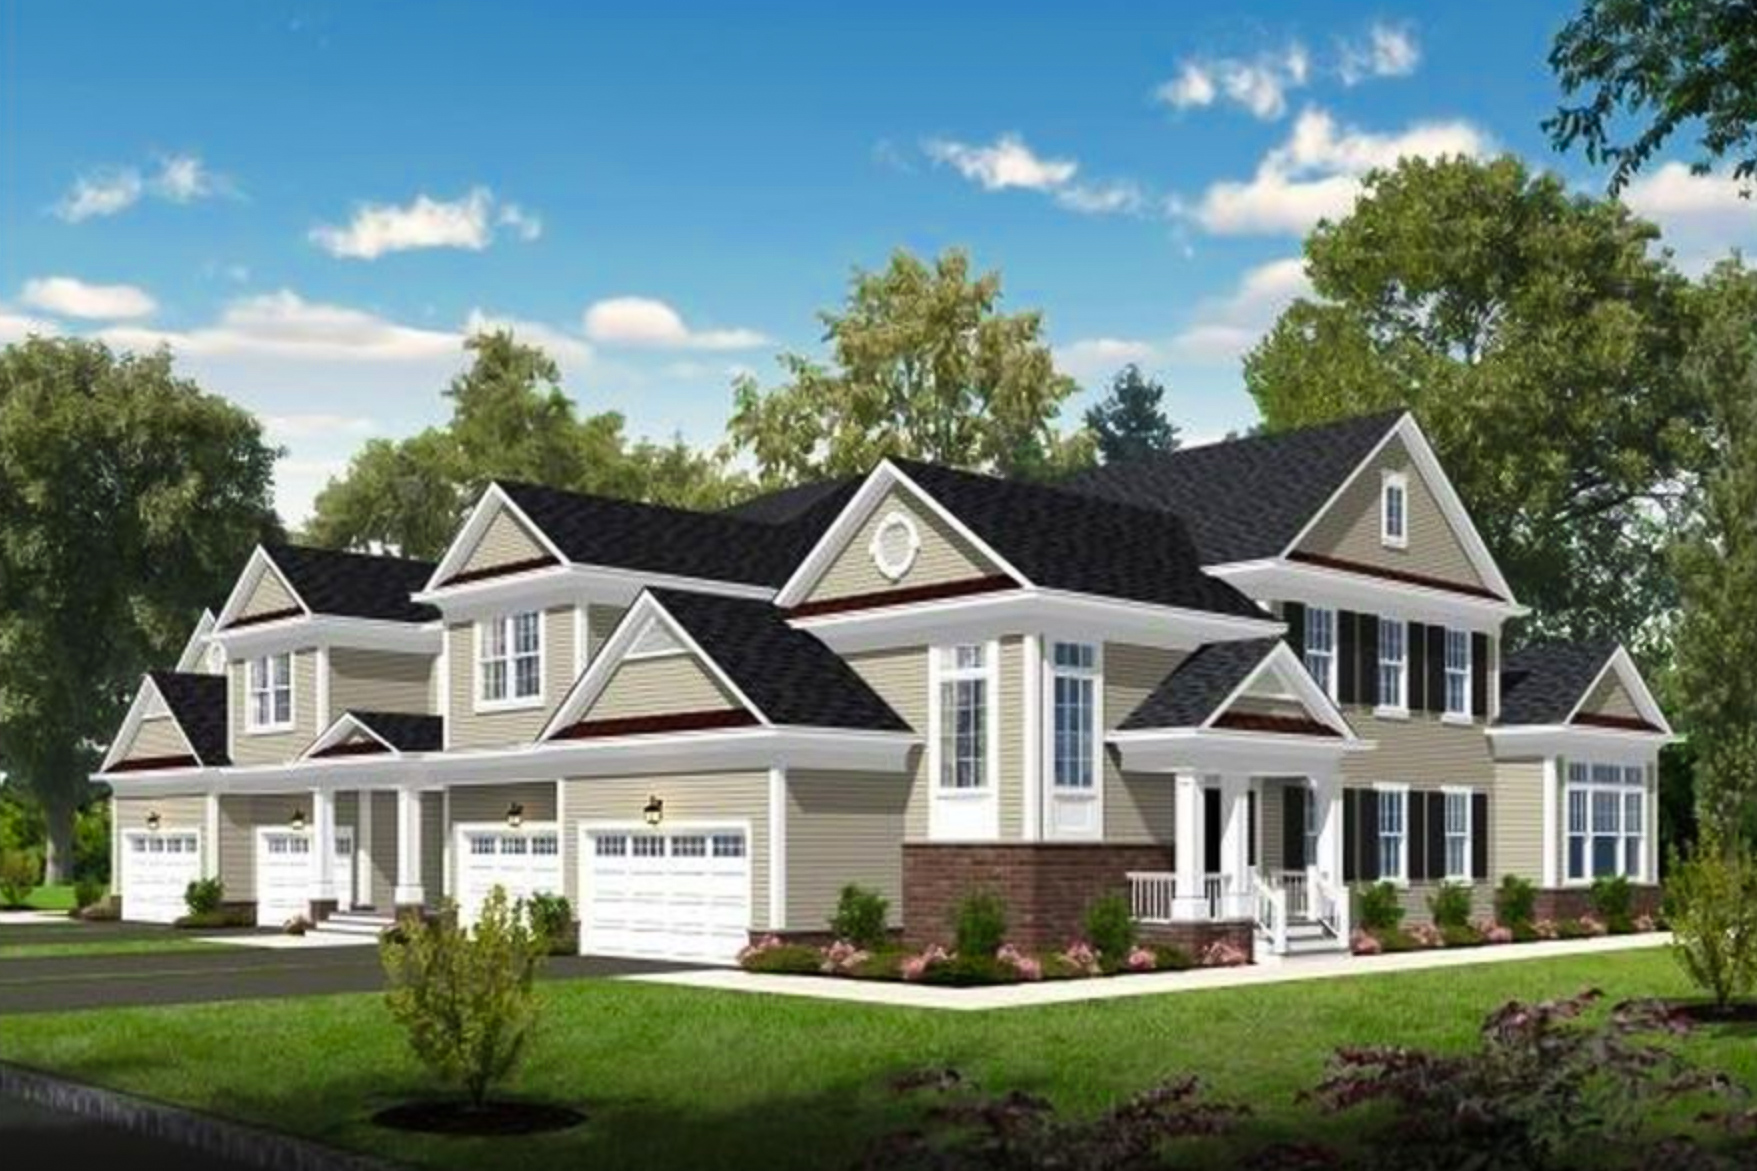 ESTATES AT CRANBURY - LOCATION: CRANBURY, NJA newly built community of 26 single-family town houses.